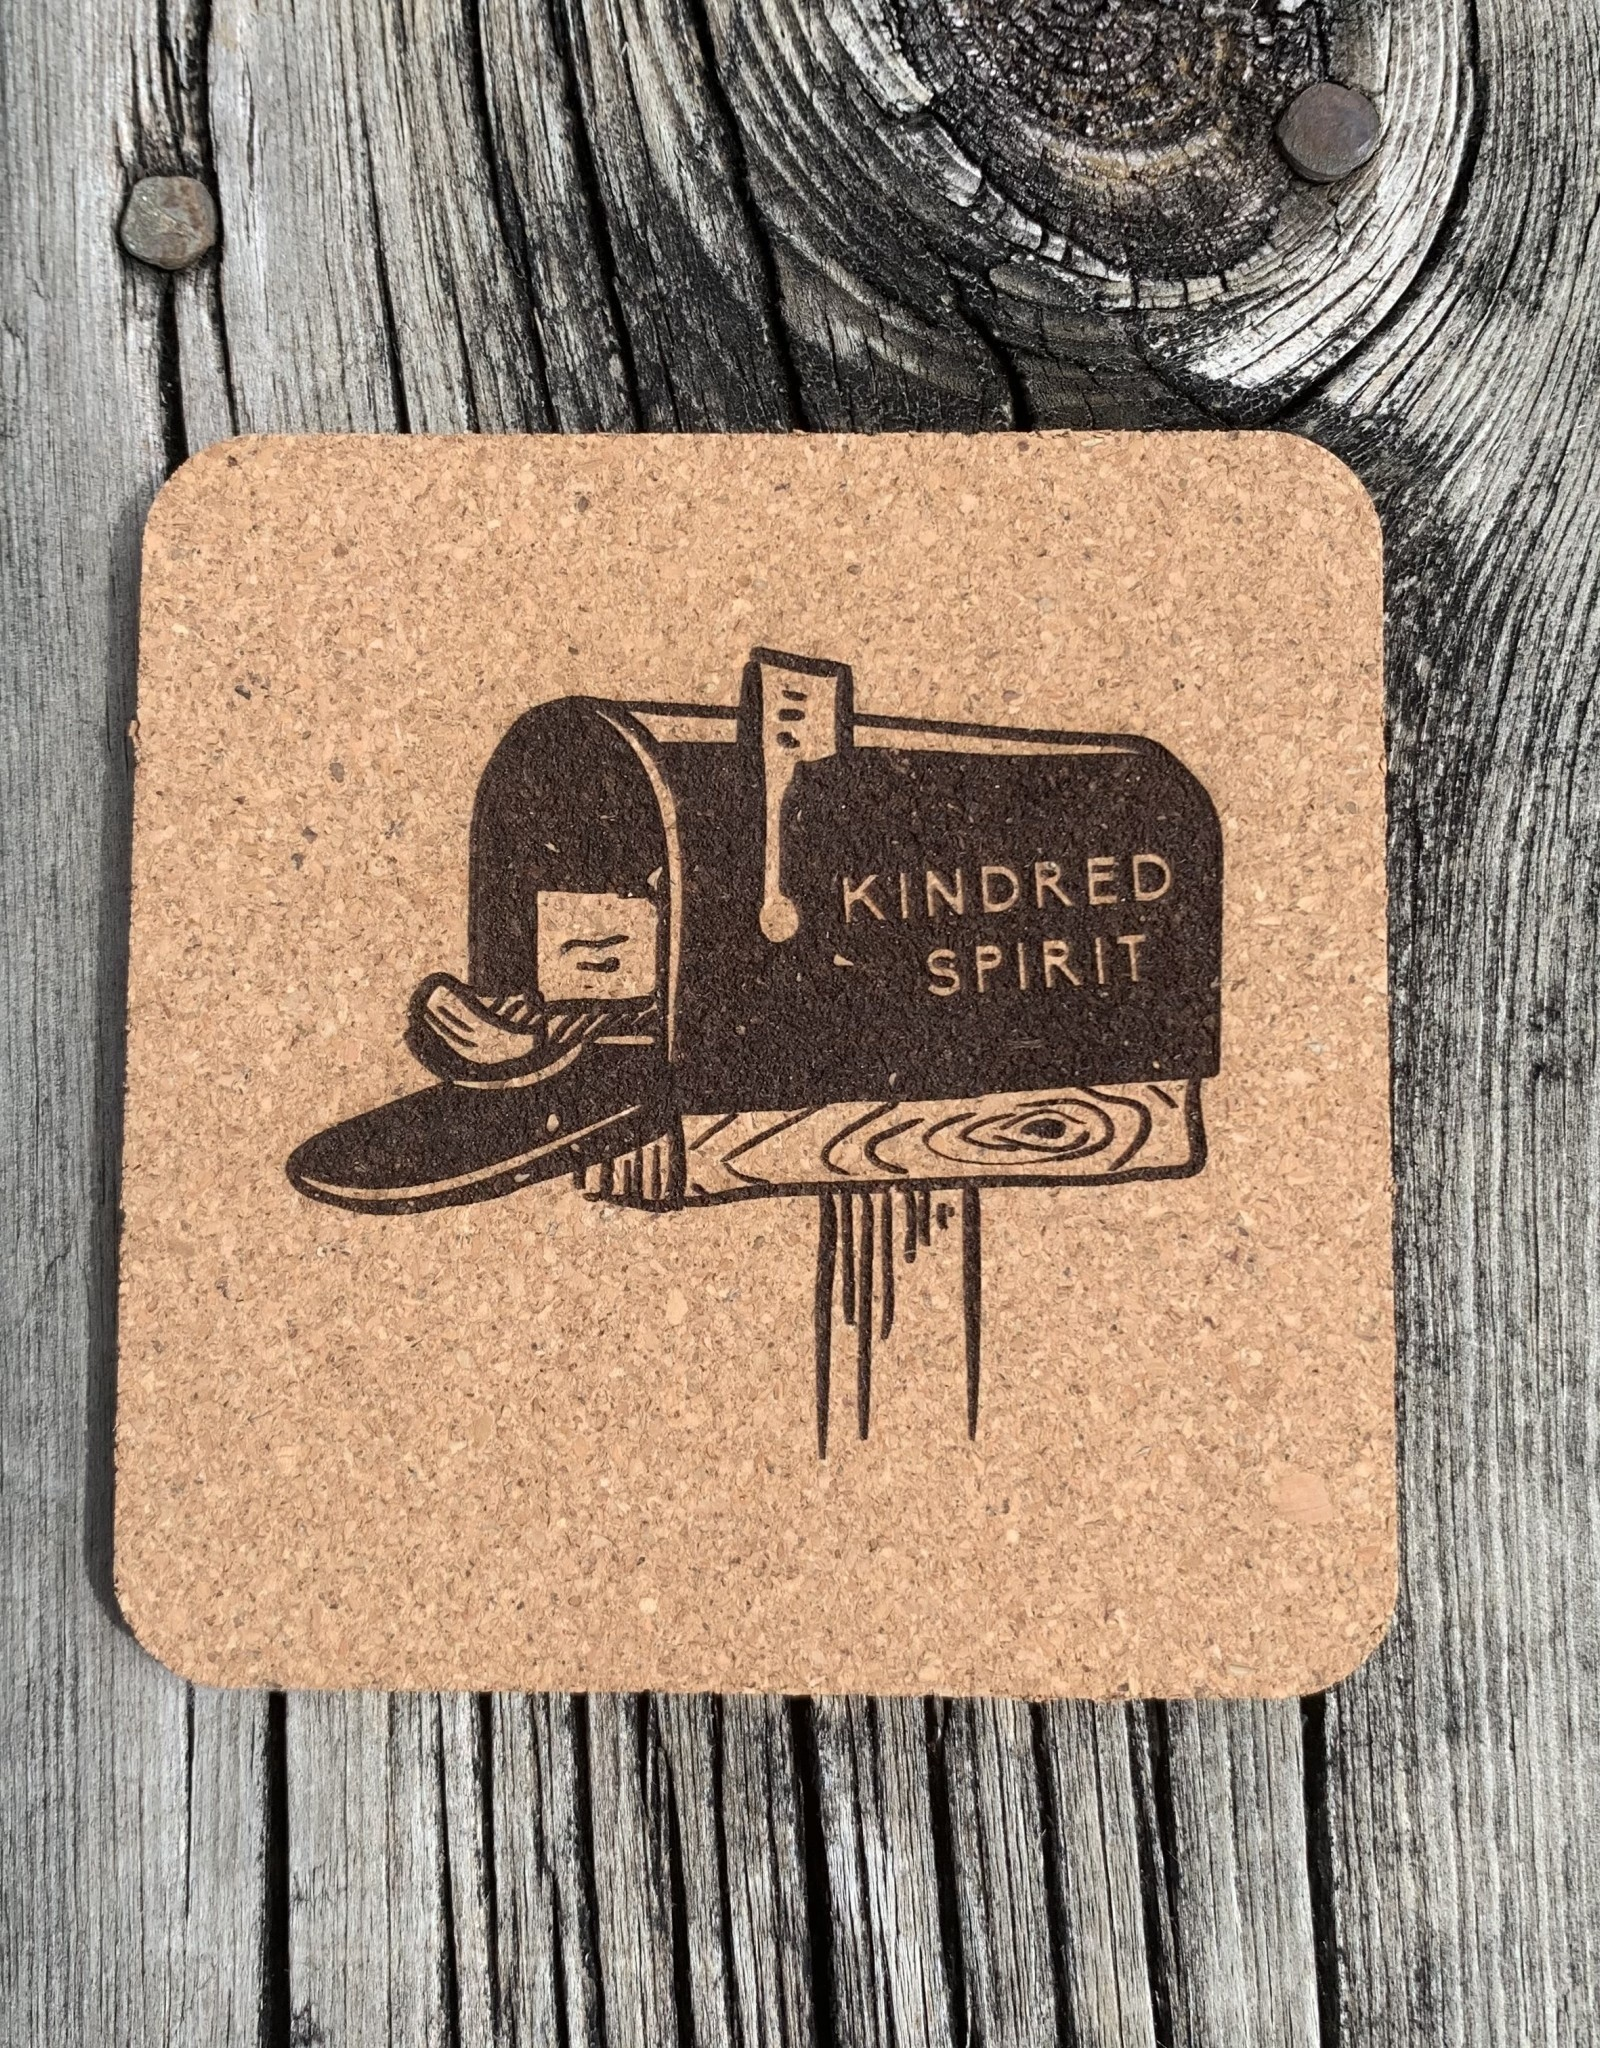 KINDRED SPIRIT CORK COASTER